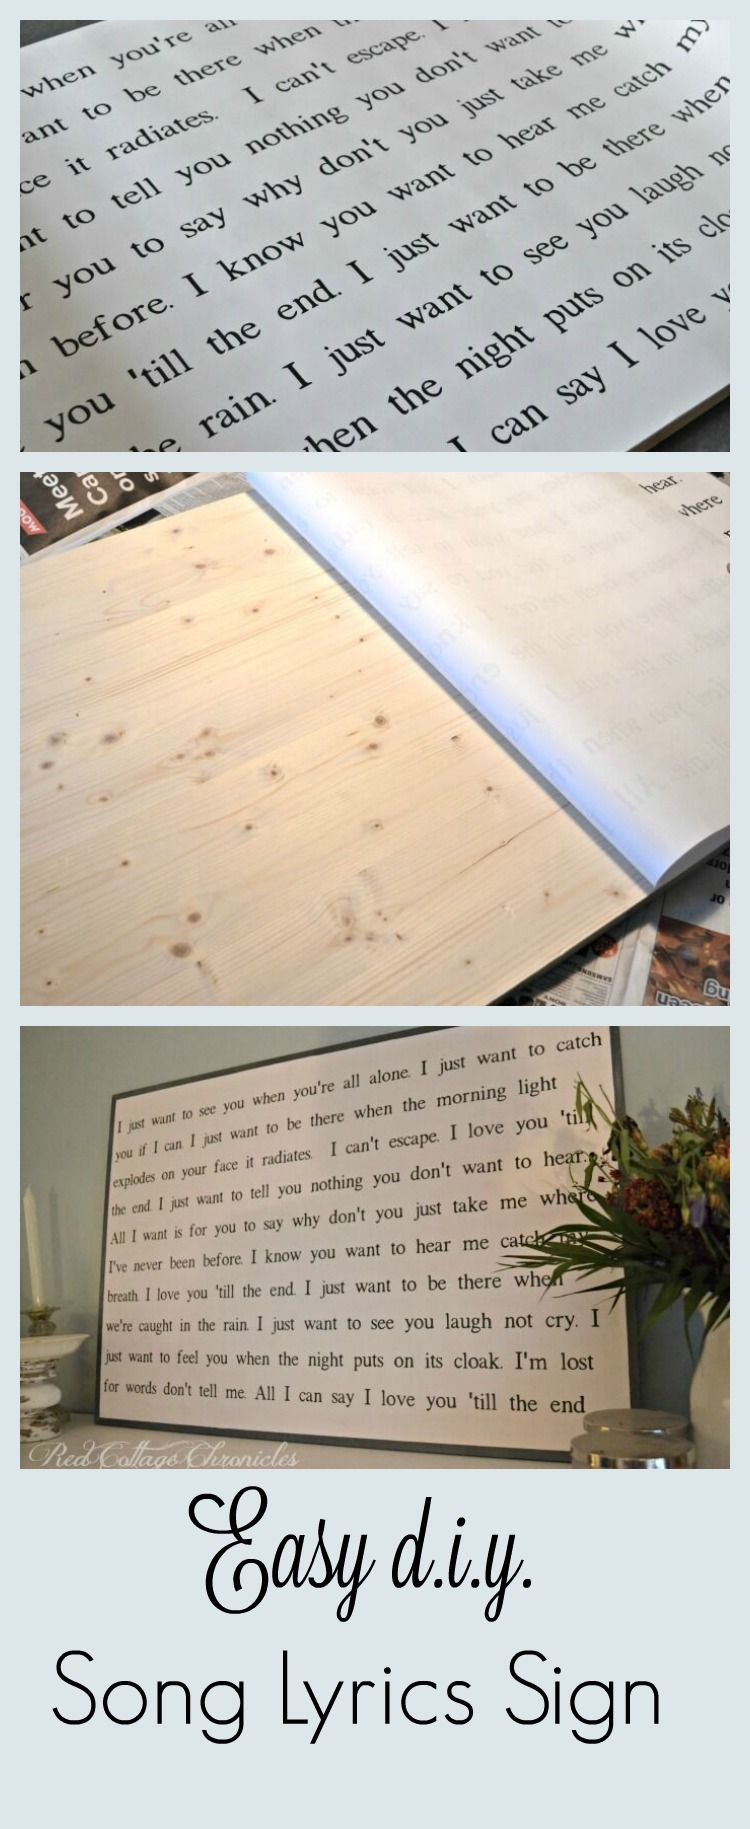 Wedding decorations quotes  Make this diy song lyrics sign no sign painting skills required